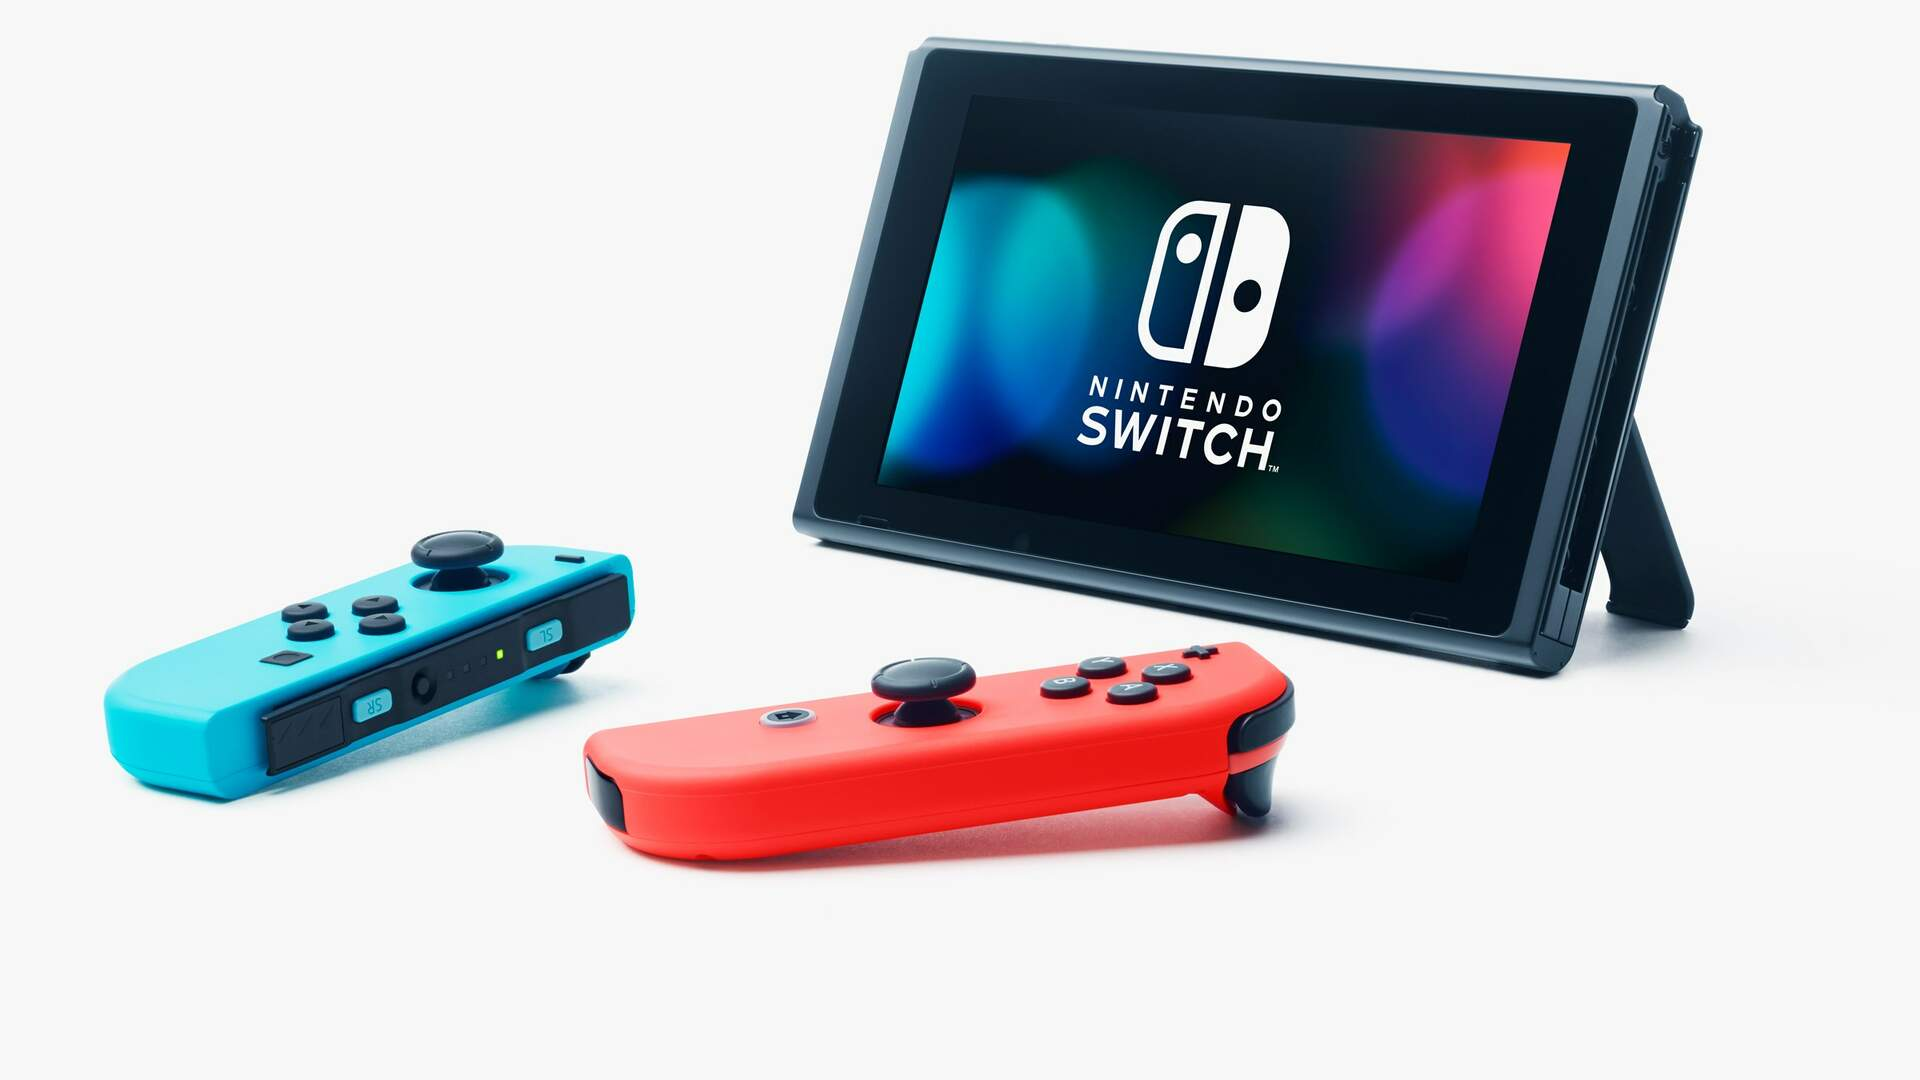 Report: Future Switch Games Should Be 4K-Ready, Nintendo Tells Developers